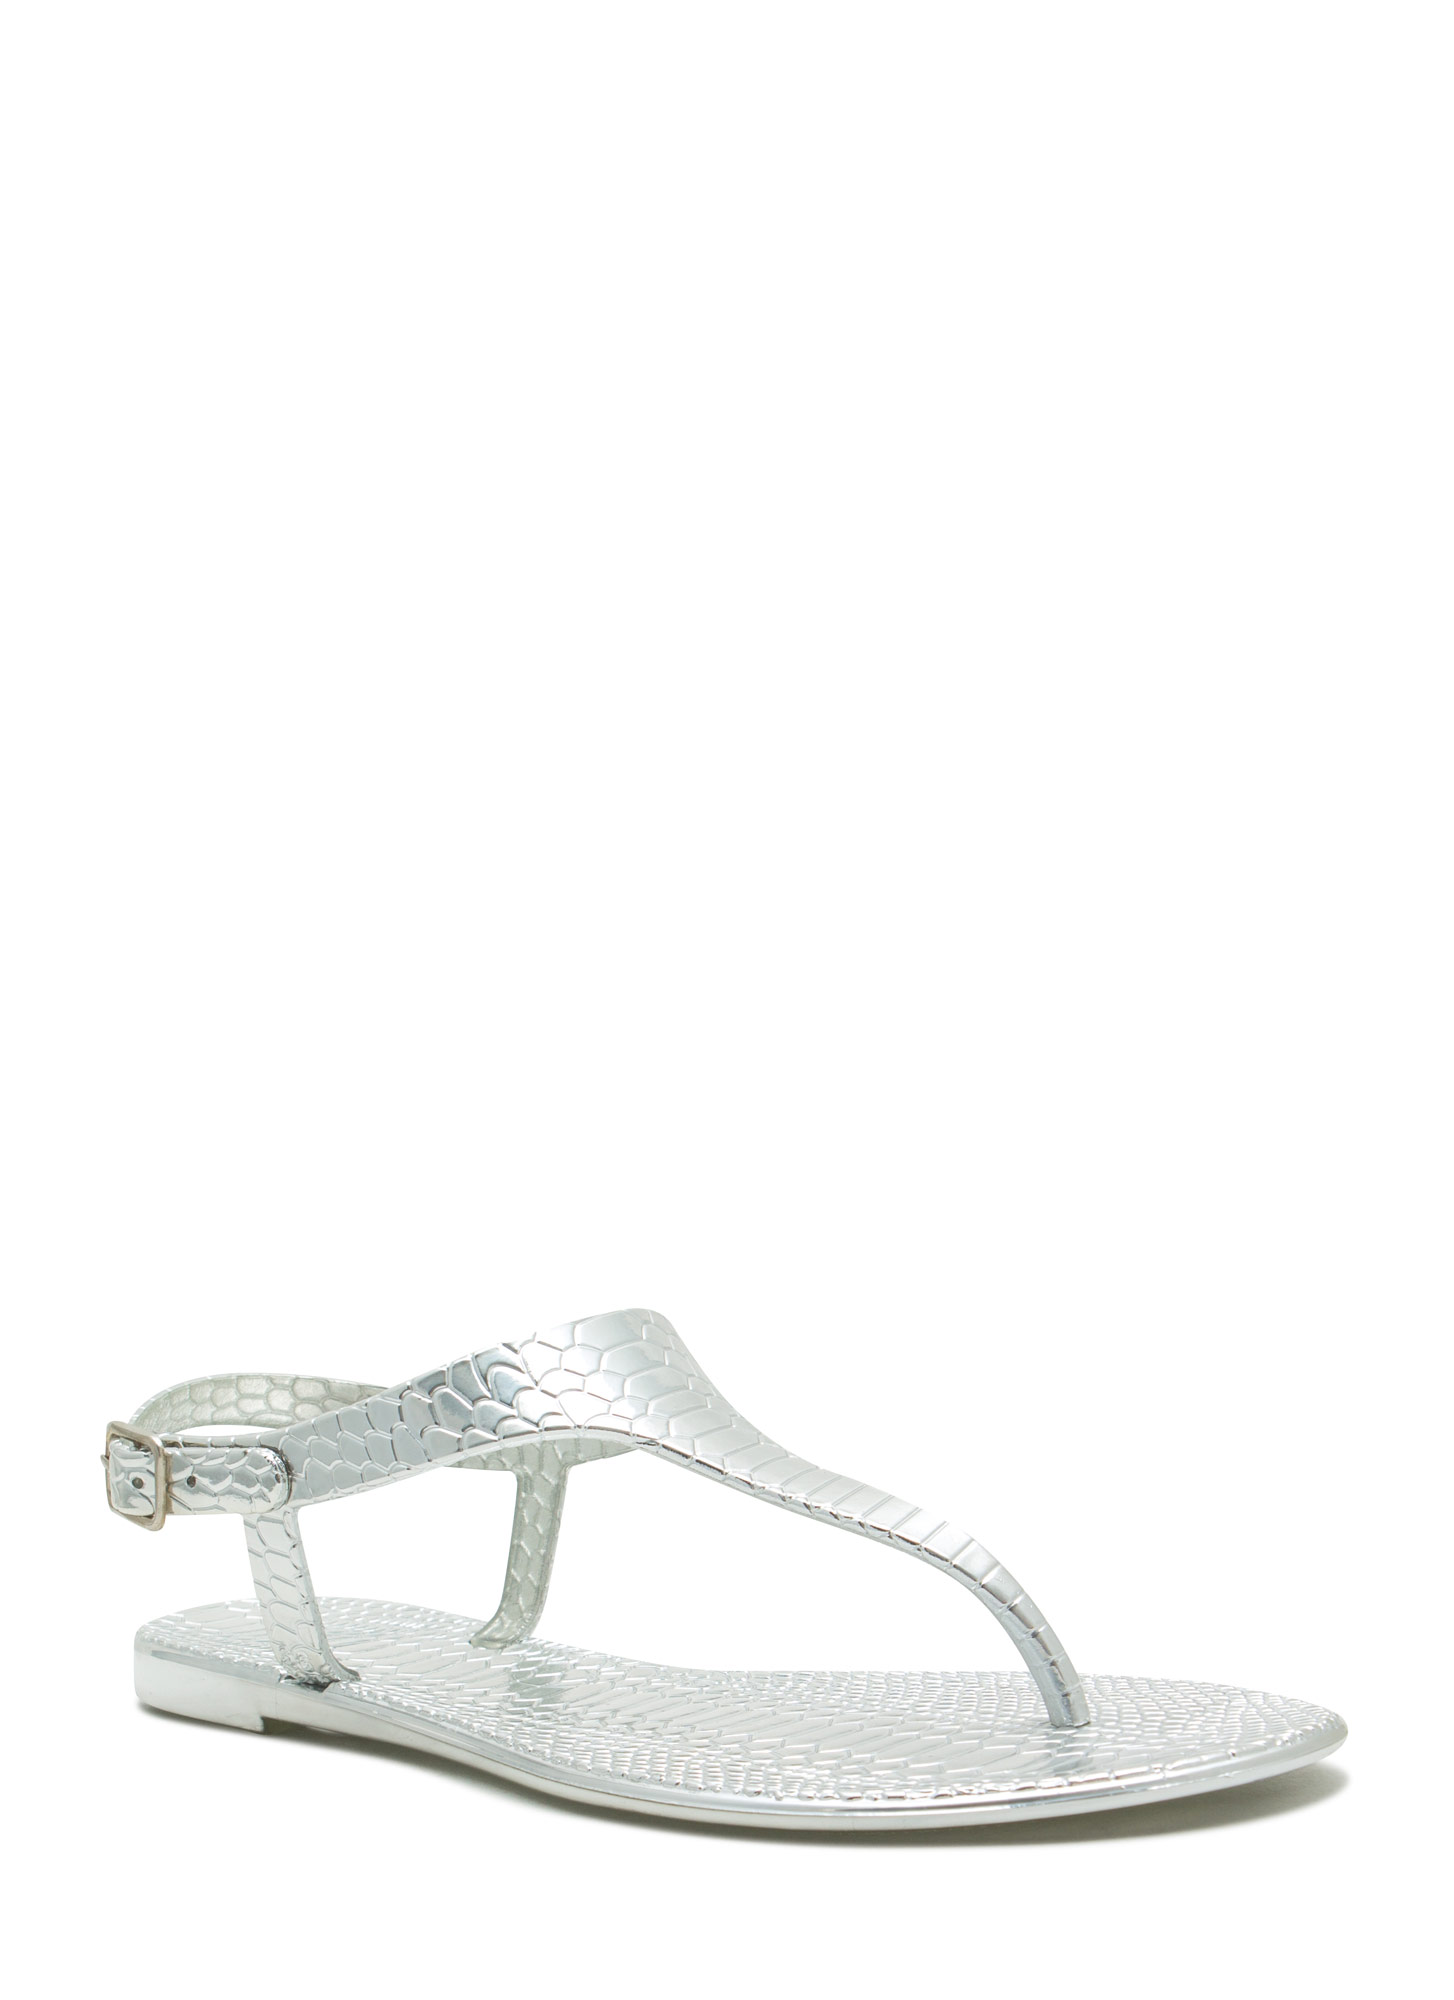 Reptile Textured Jelly Thong Sandals SILVER